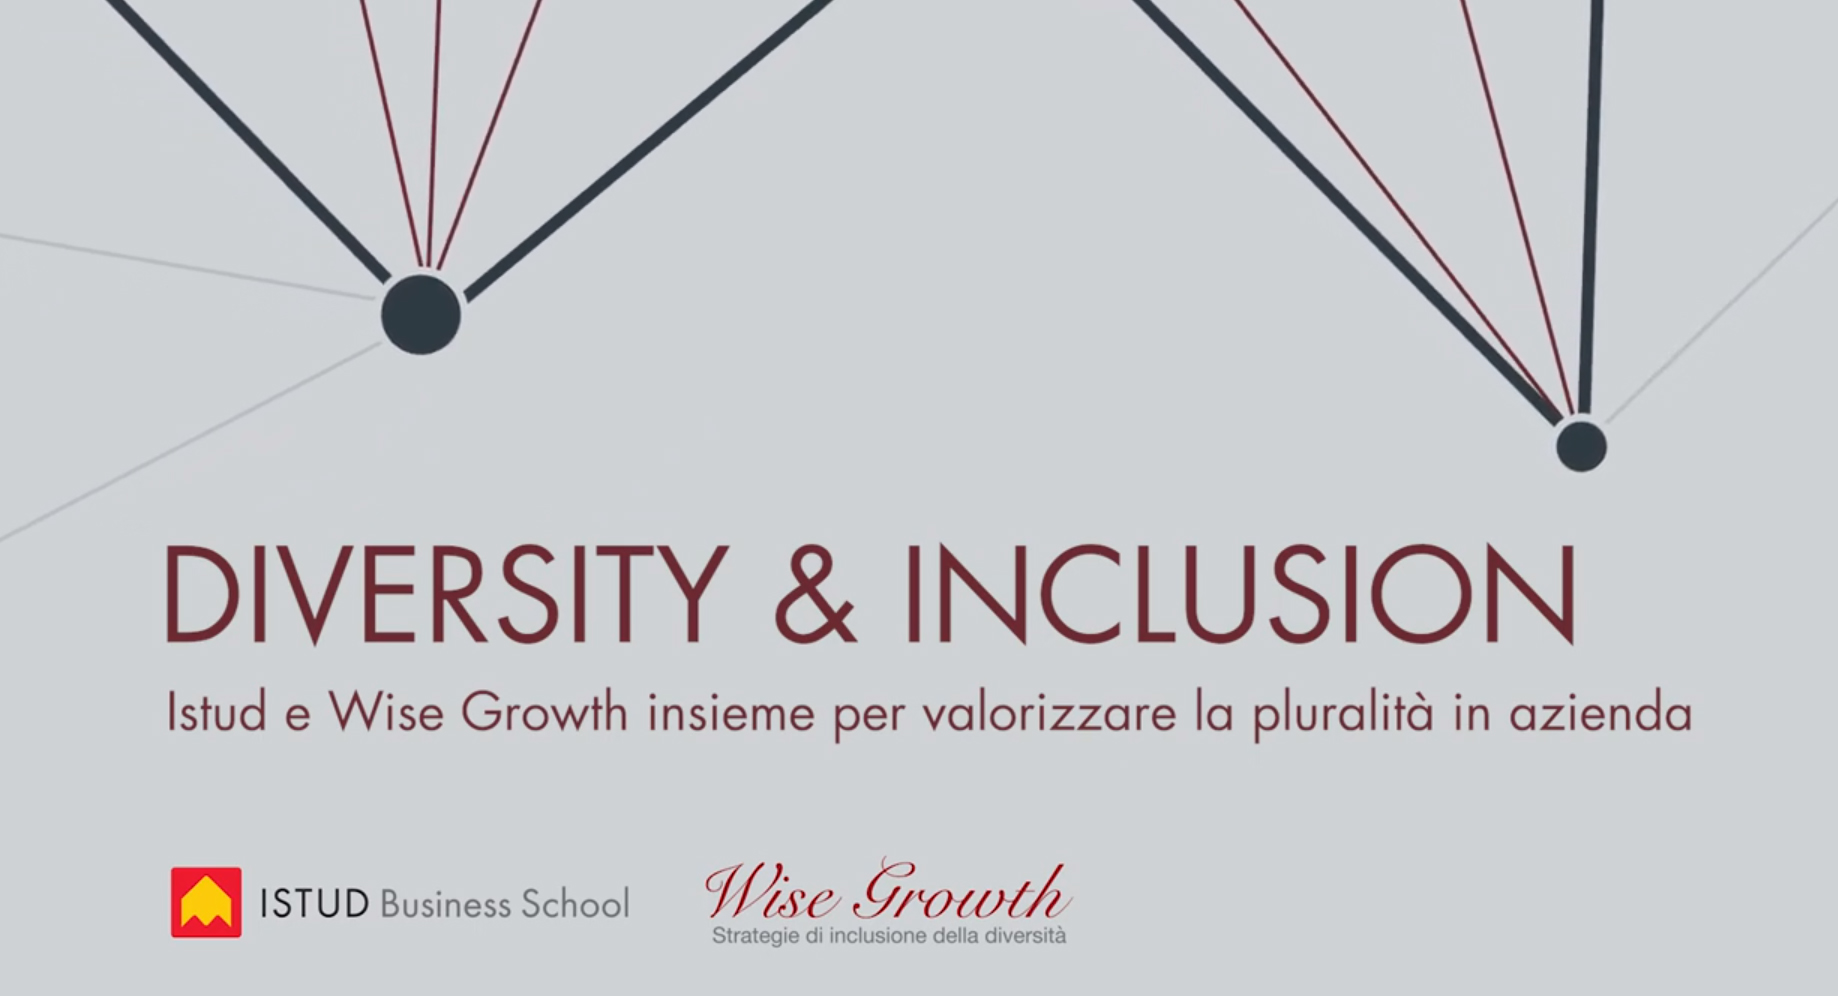 ISTUD e Wise Growth: Diversity & Inclusion